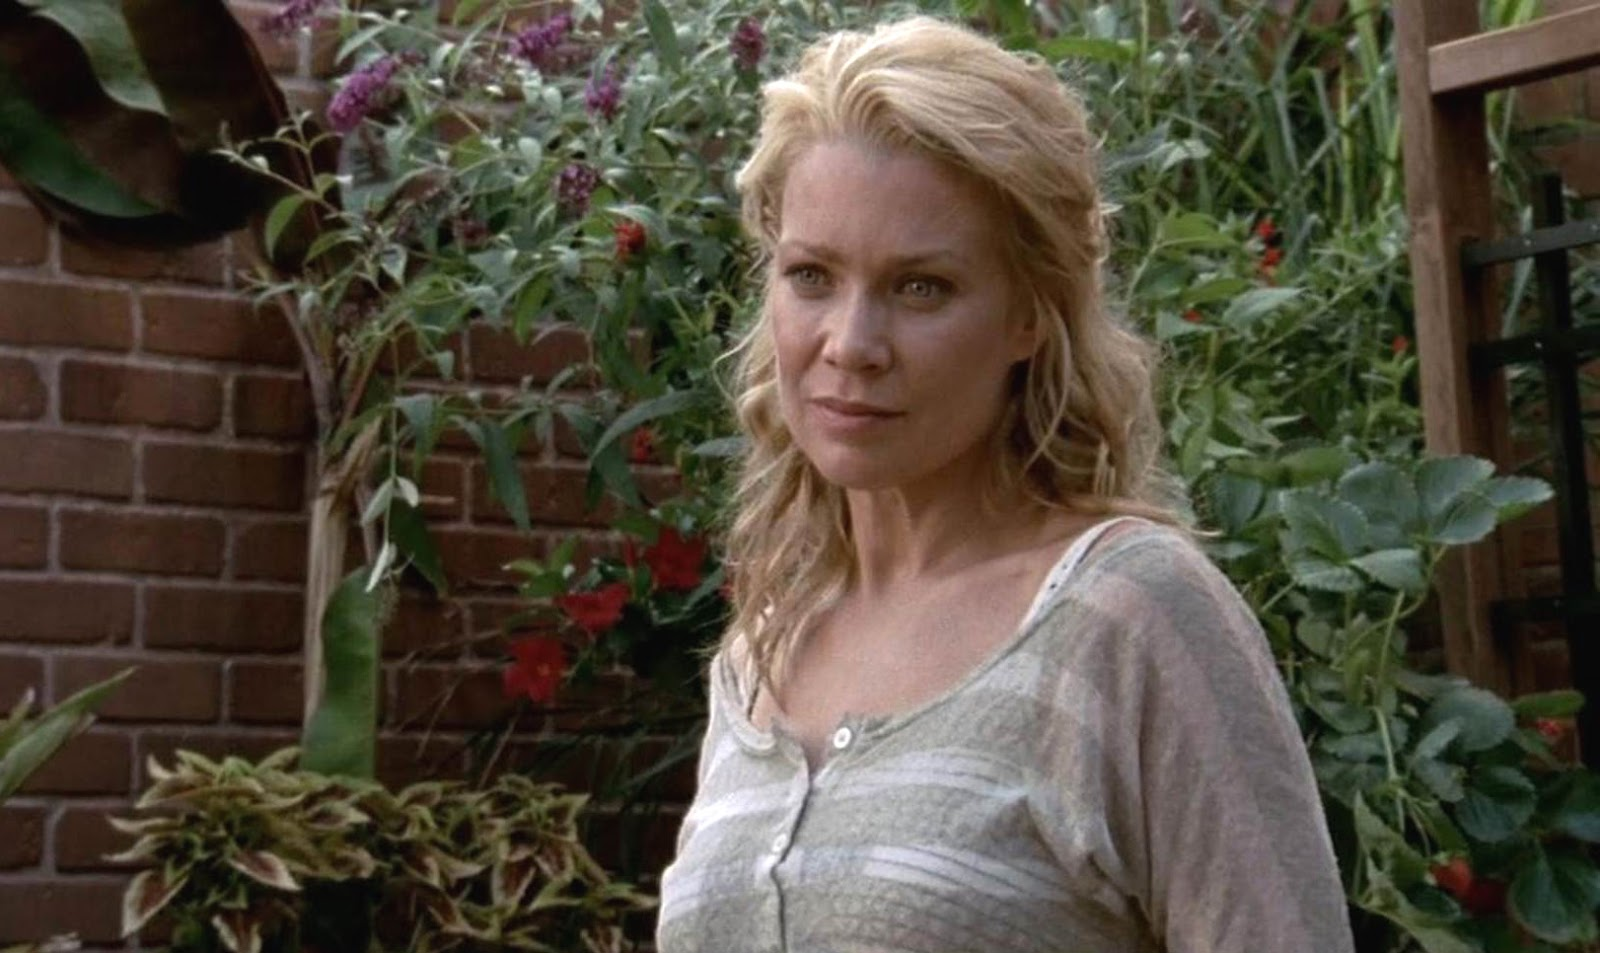 Andrea, durante un episodio de la tercera temporada de The Walking Dead